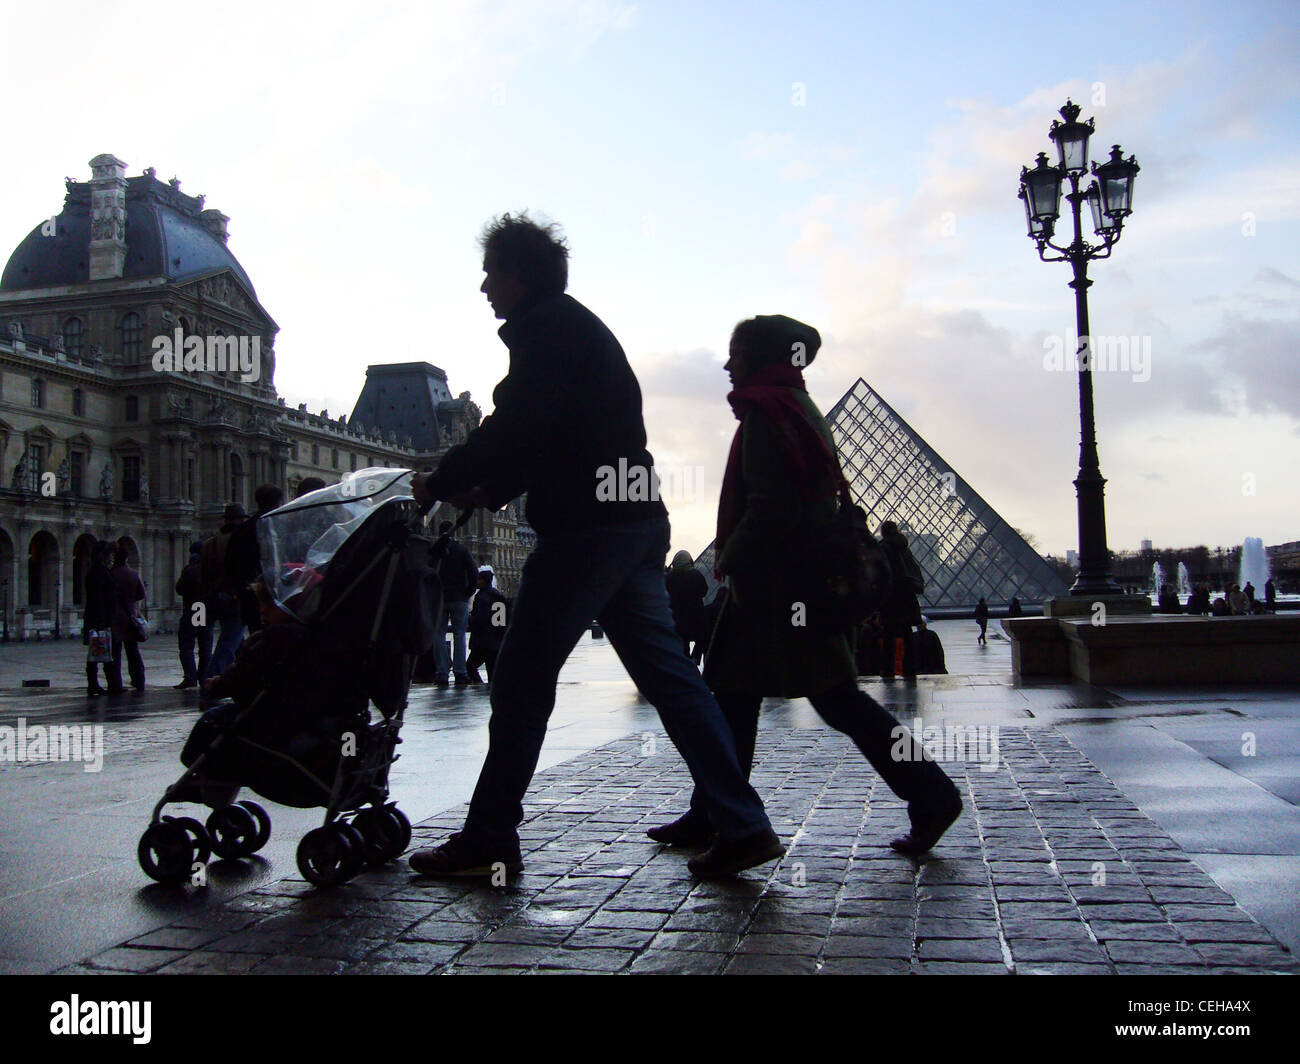 Silhouettes on a rainy day in Place du Carrousel du Louvre, Paris, France Stock Foto